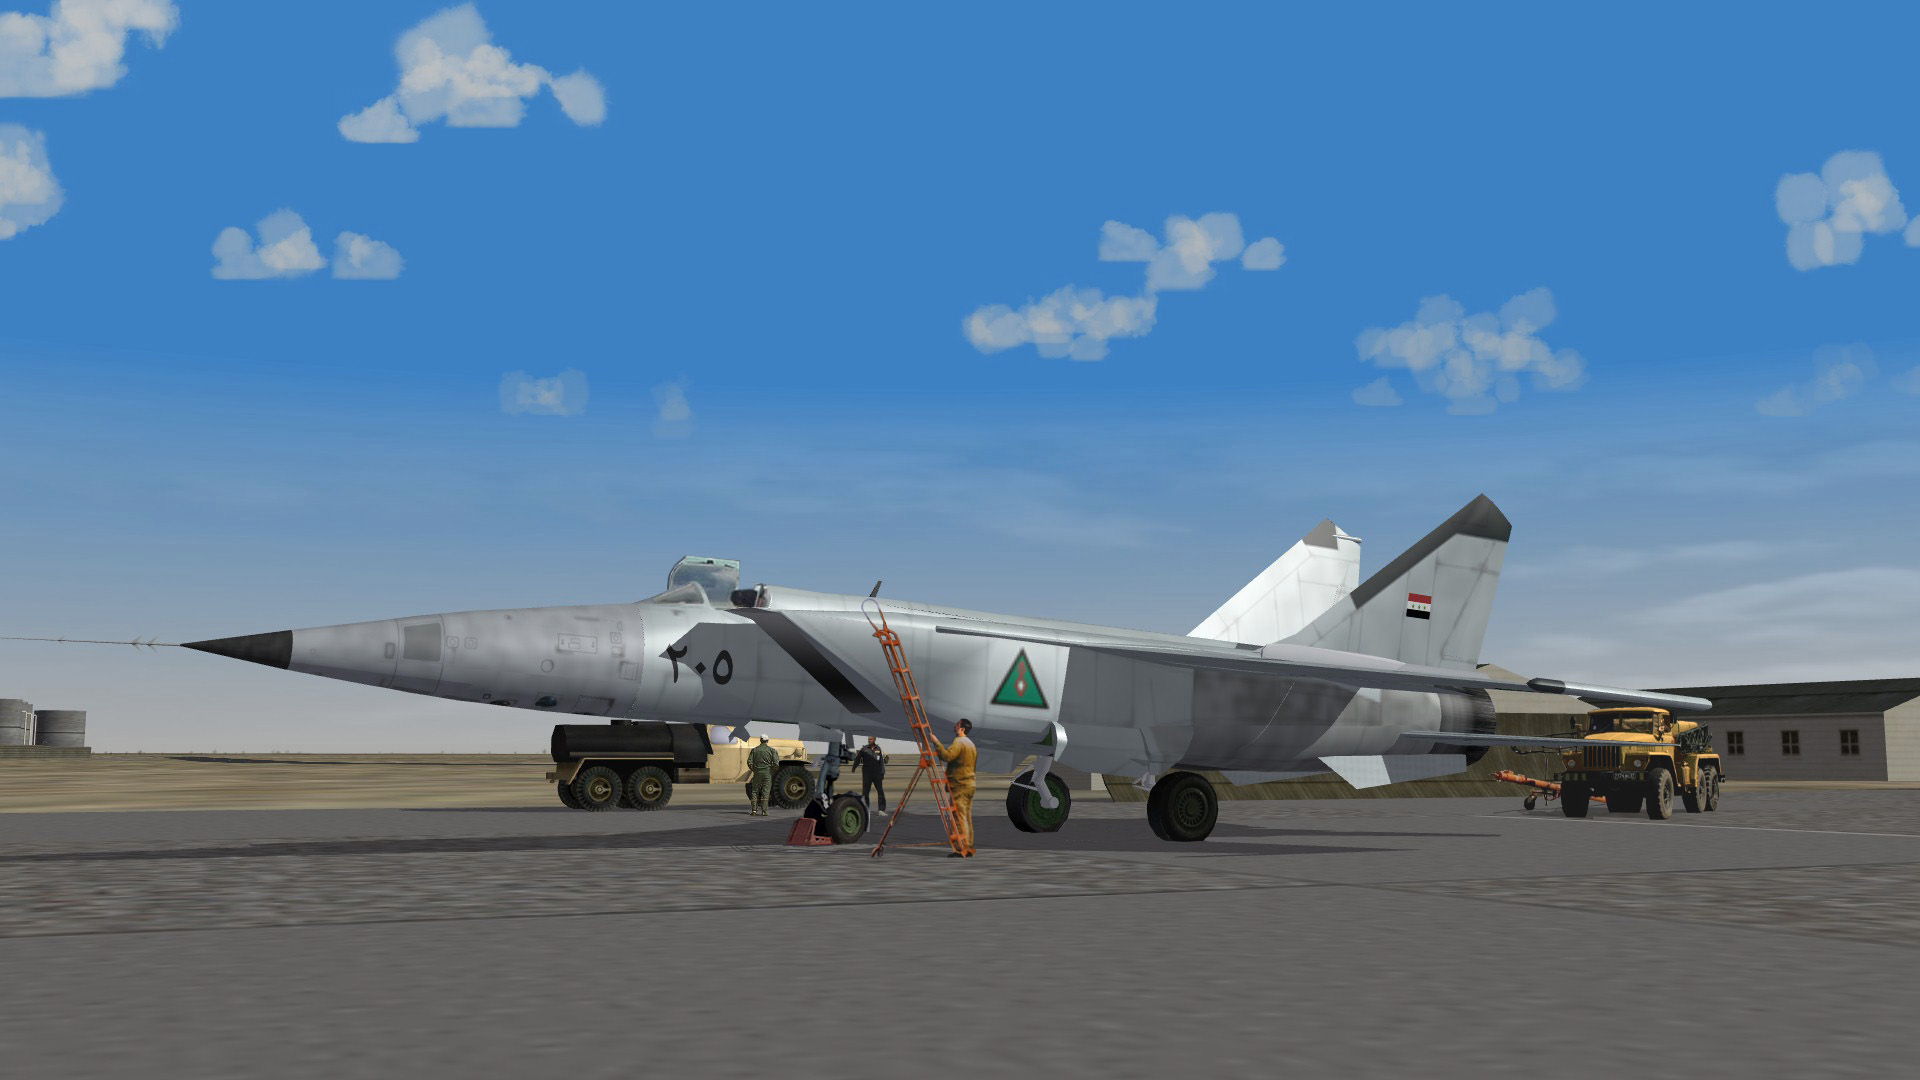 Mig 25 being prepared for a new mission